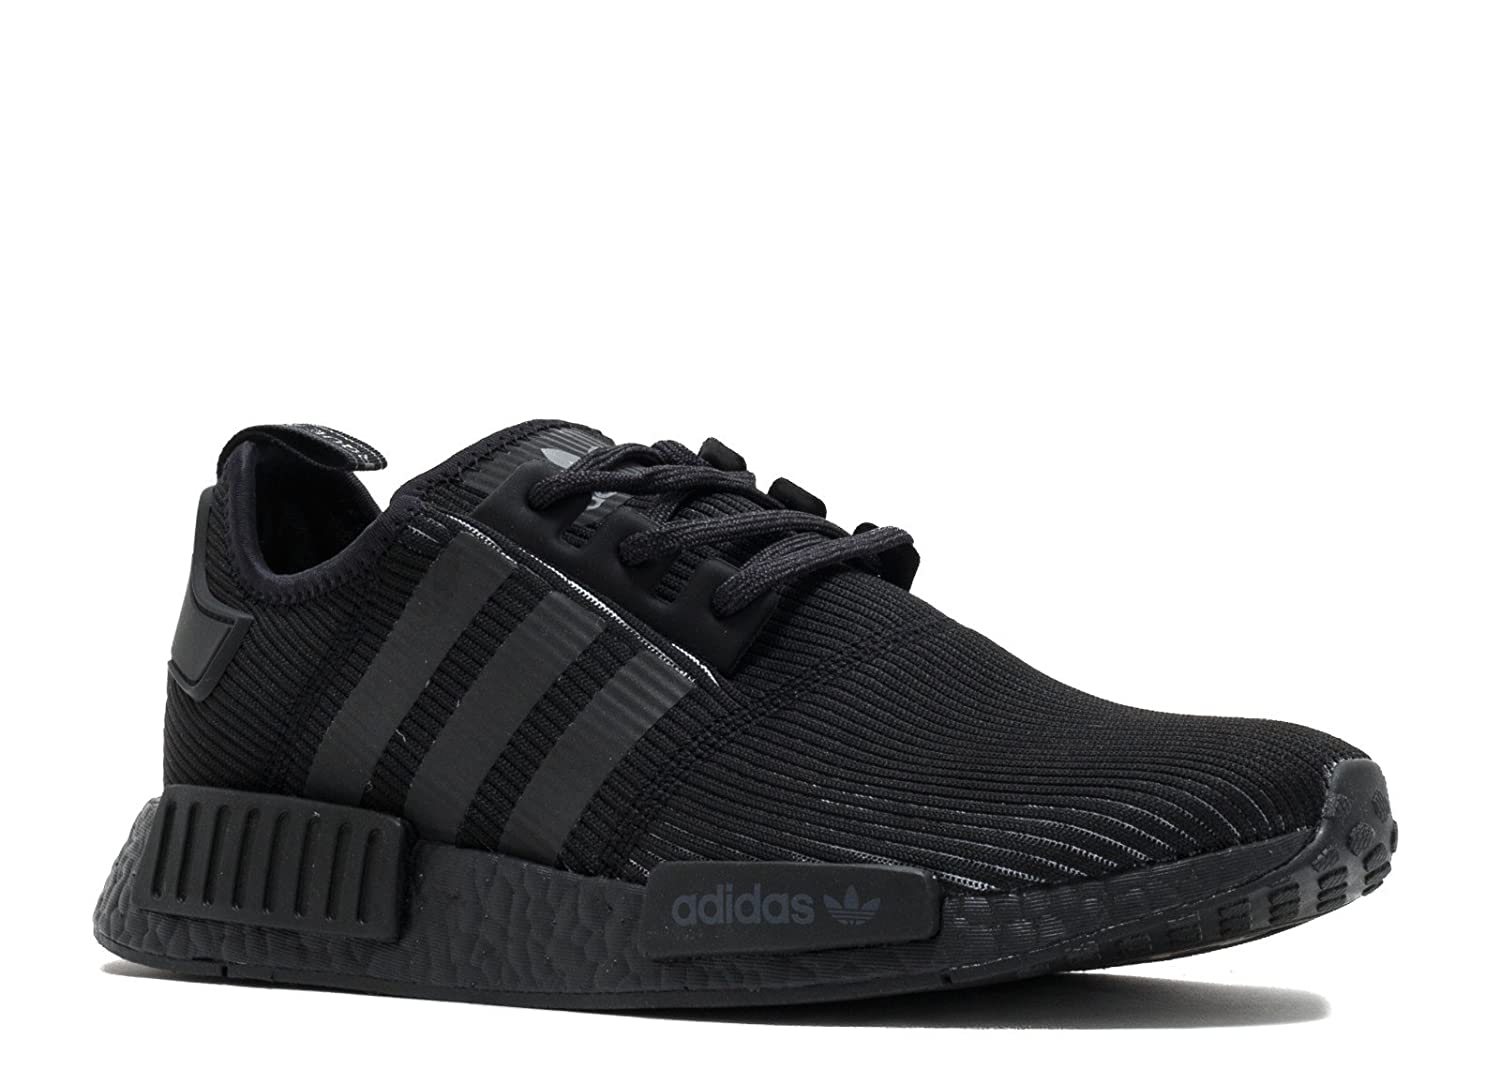 Core Black Core Black Utility Black adidas Originals Men's